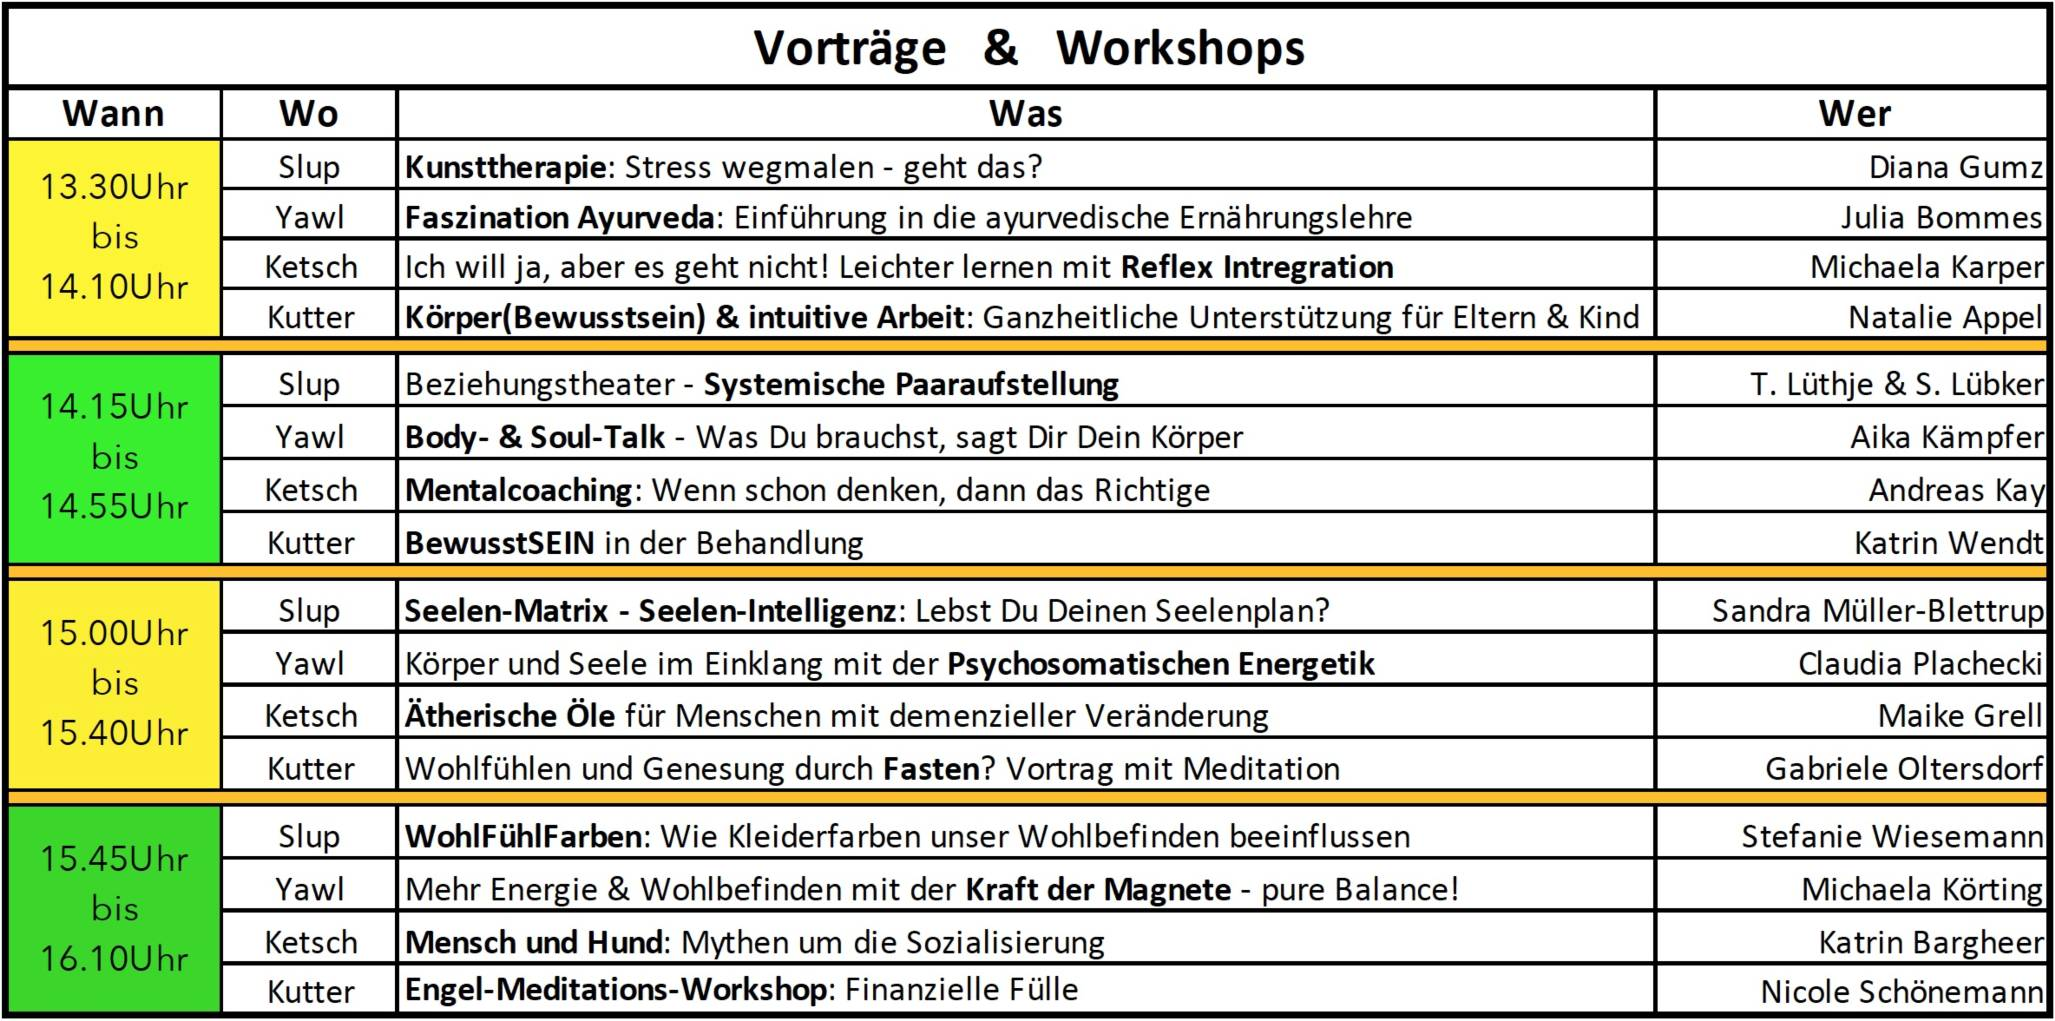 Vortrags- & Workshop-Programm Teil 2